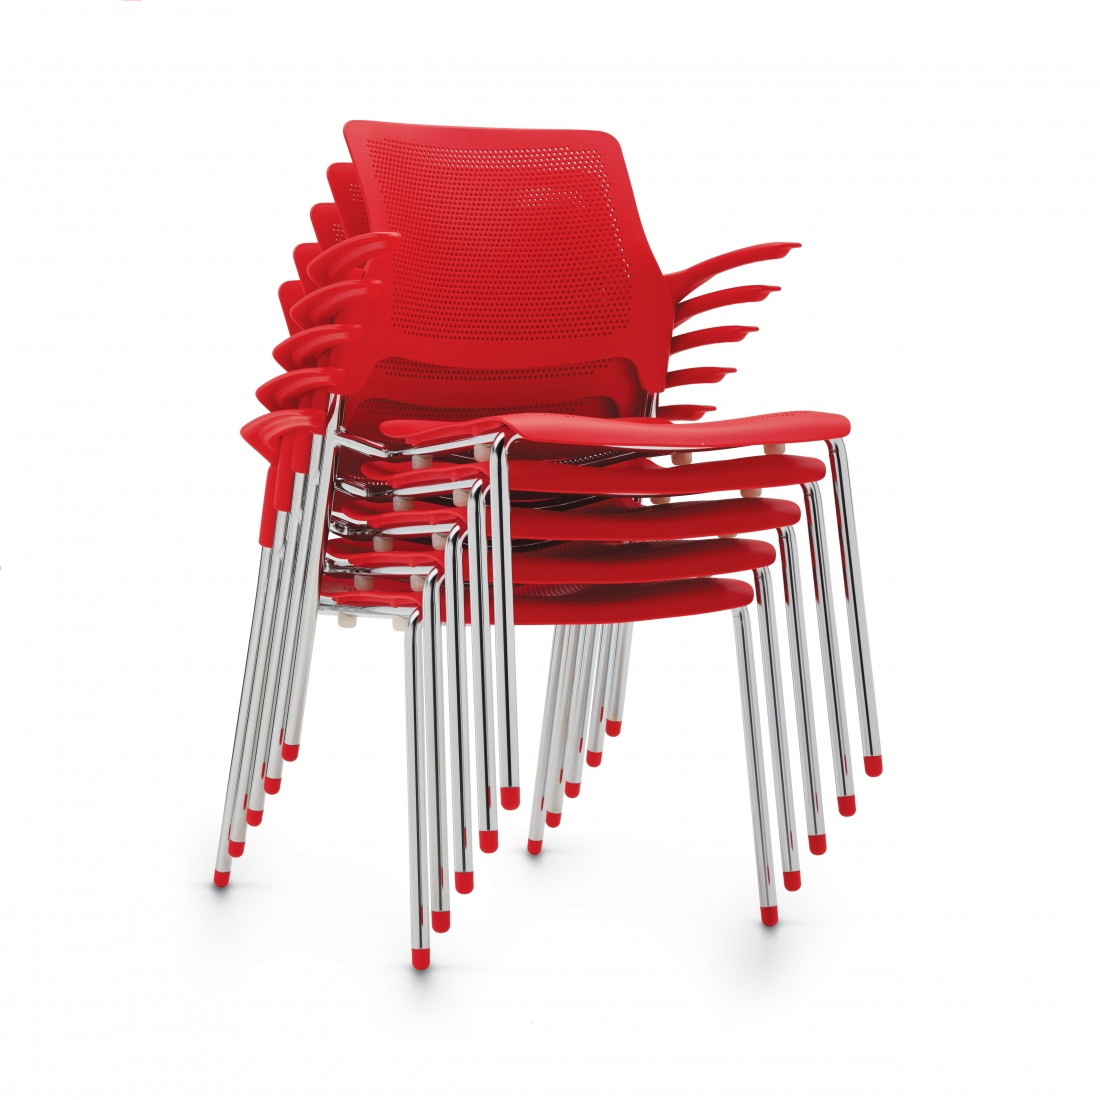 Folding/Stacking Chairs & Carts